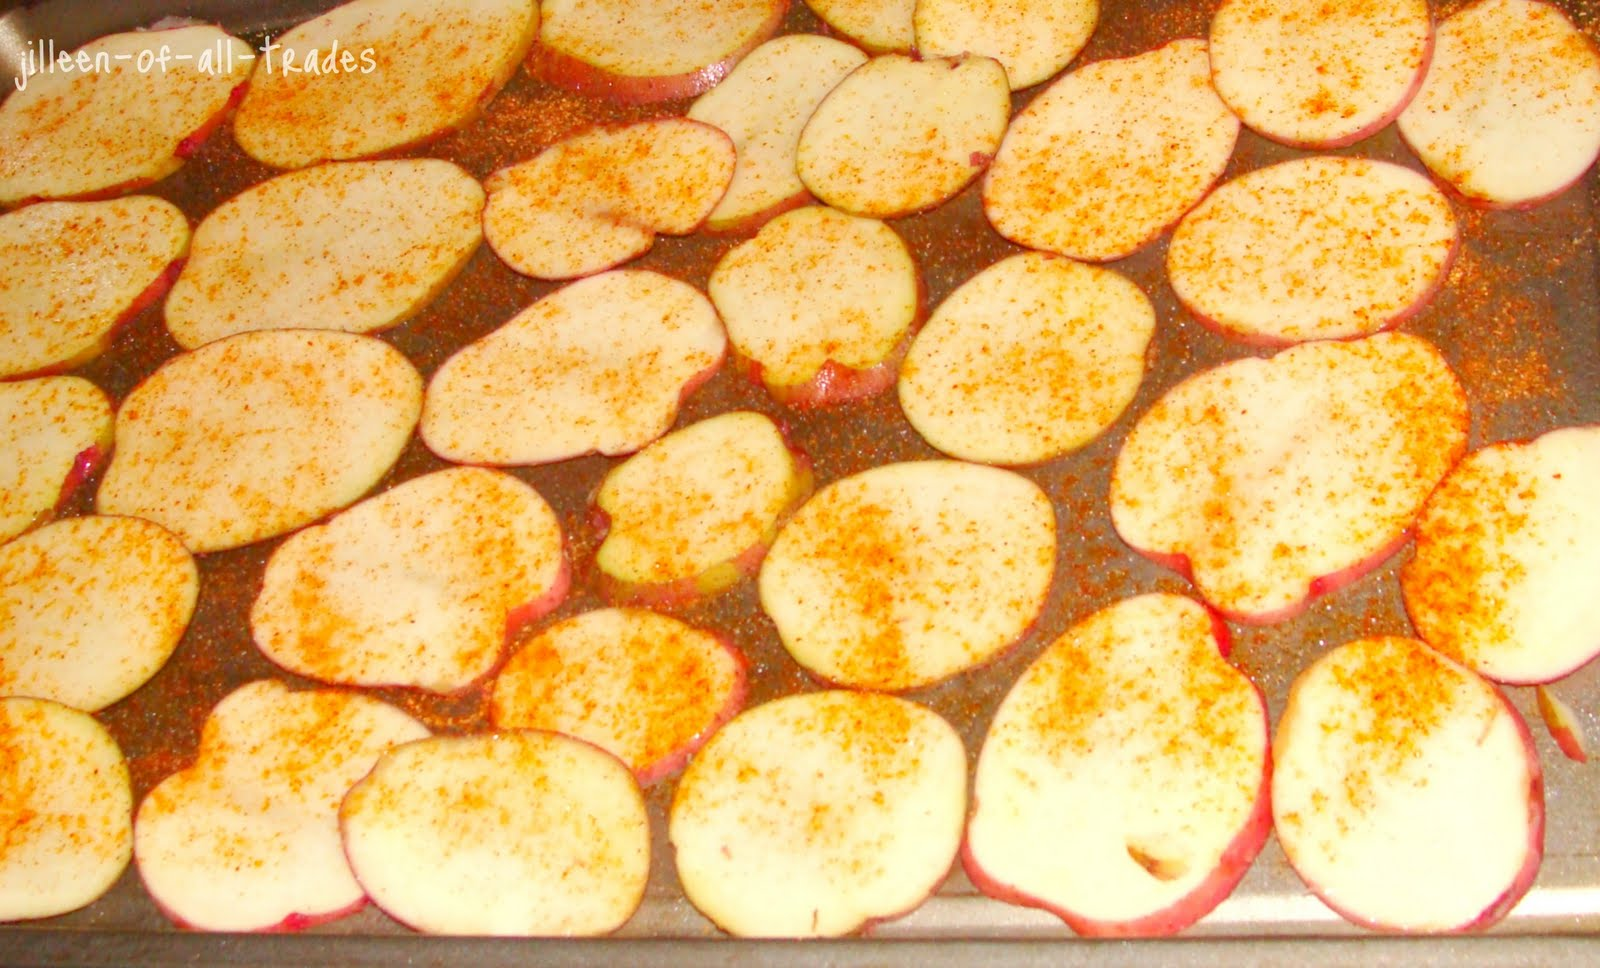 How To Slice Potatoes Thin With Food Processor